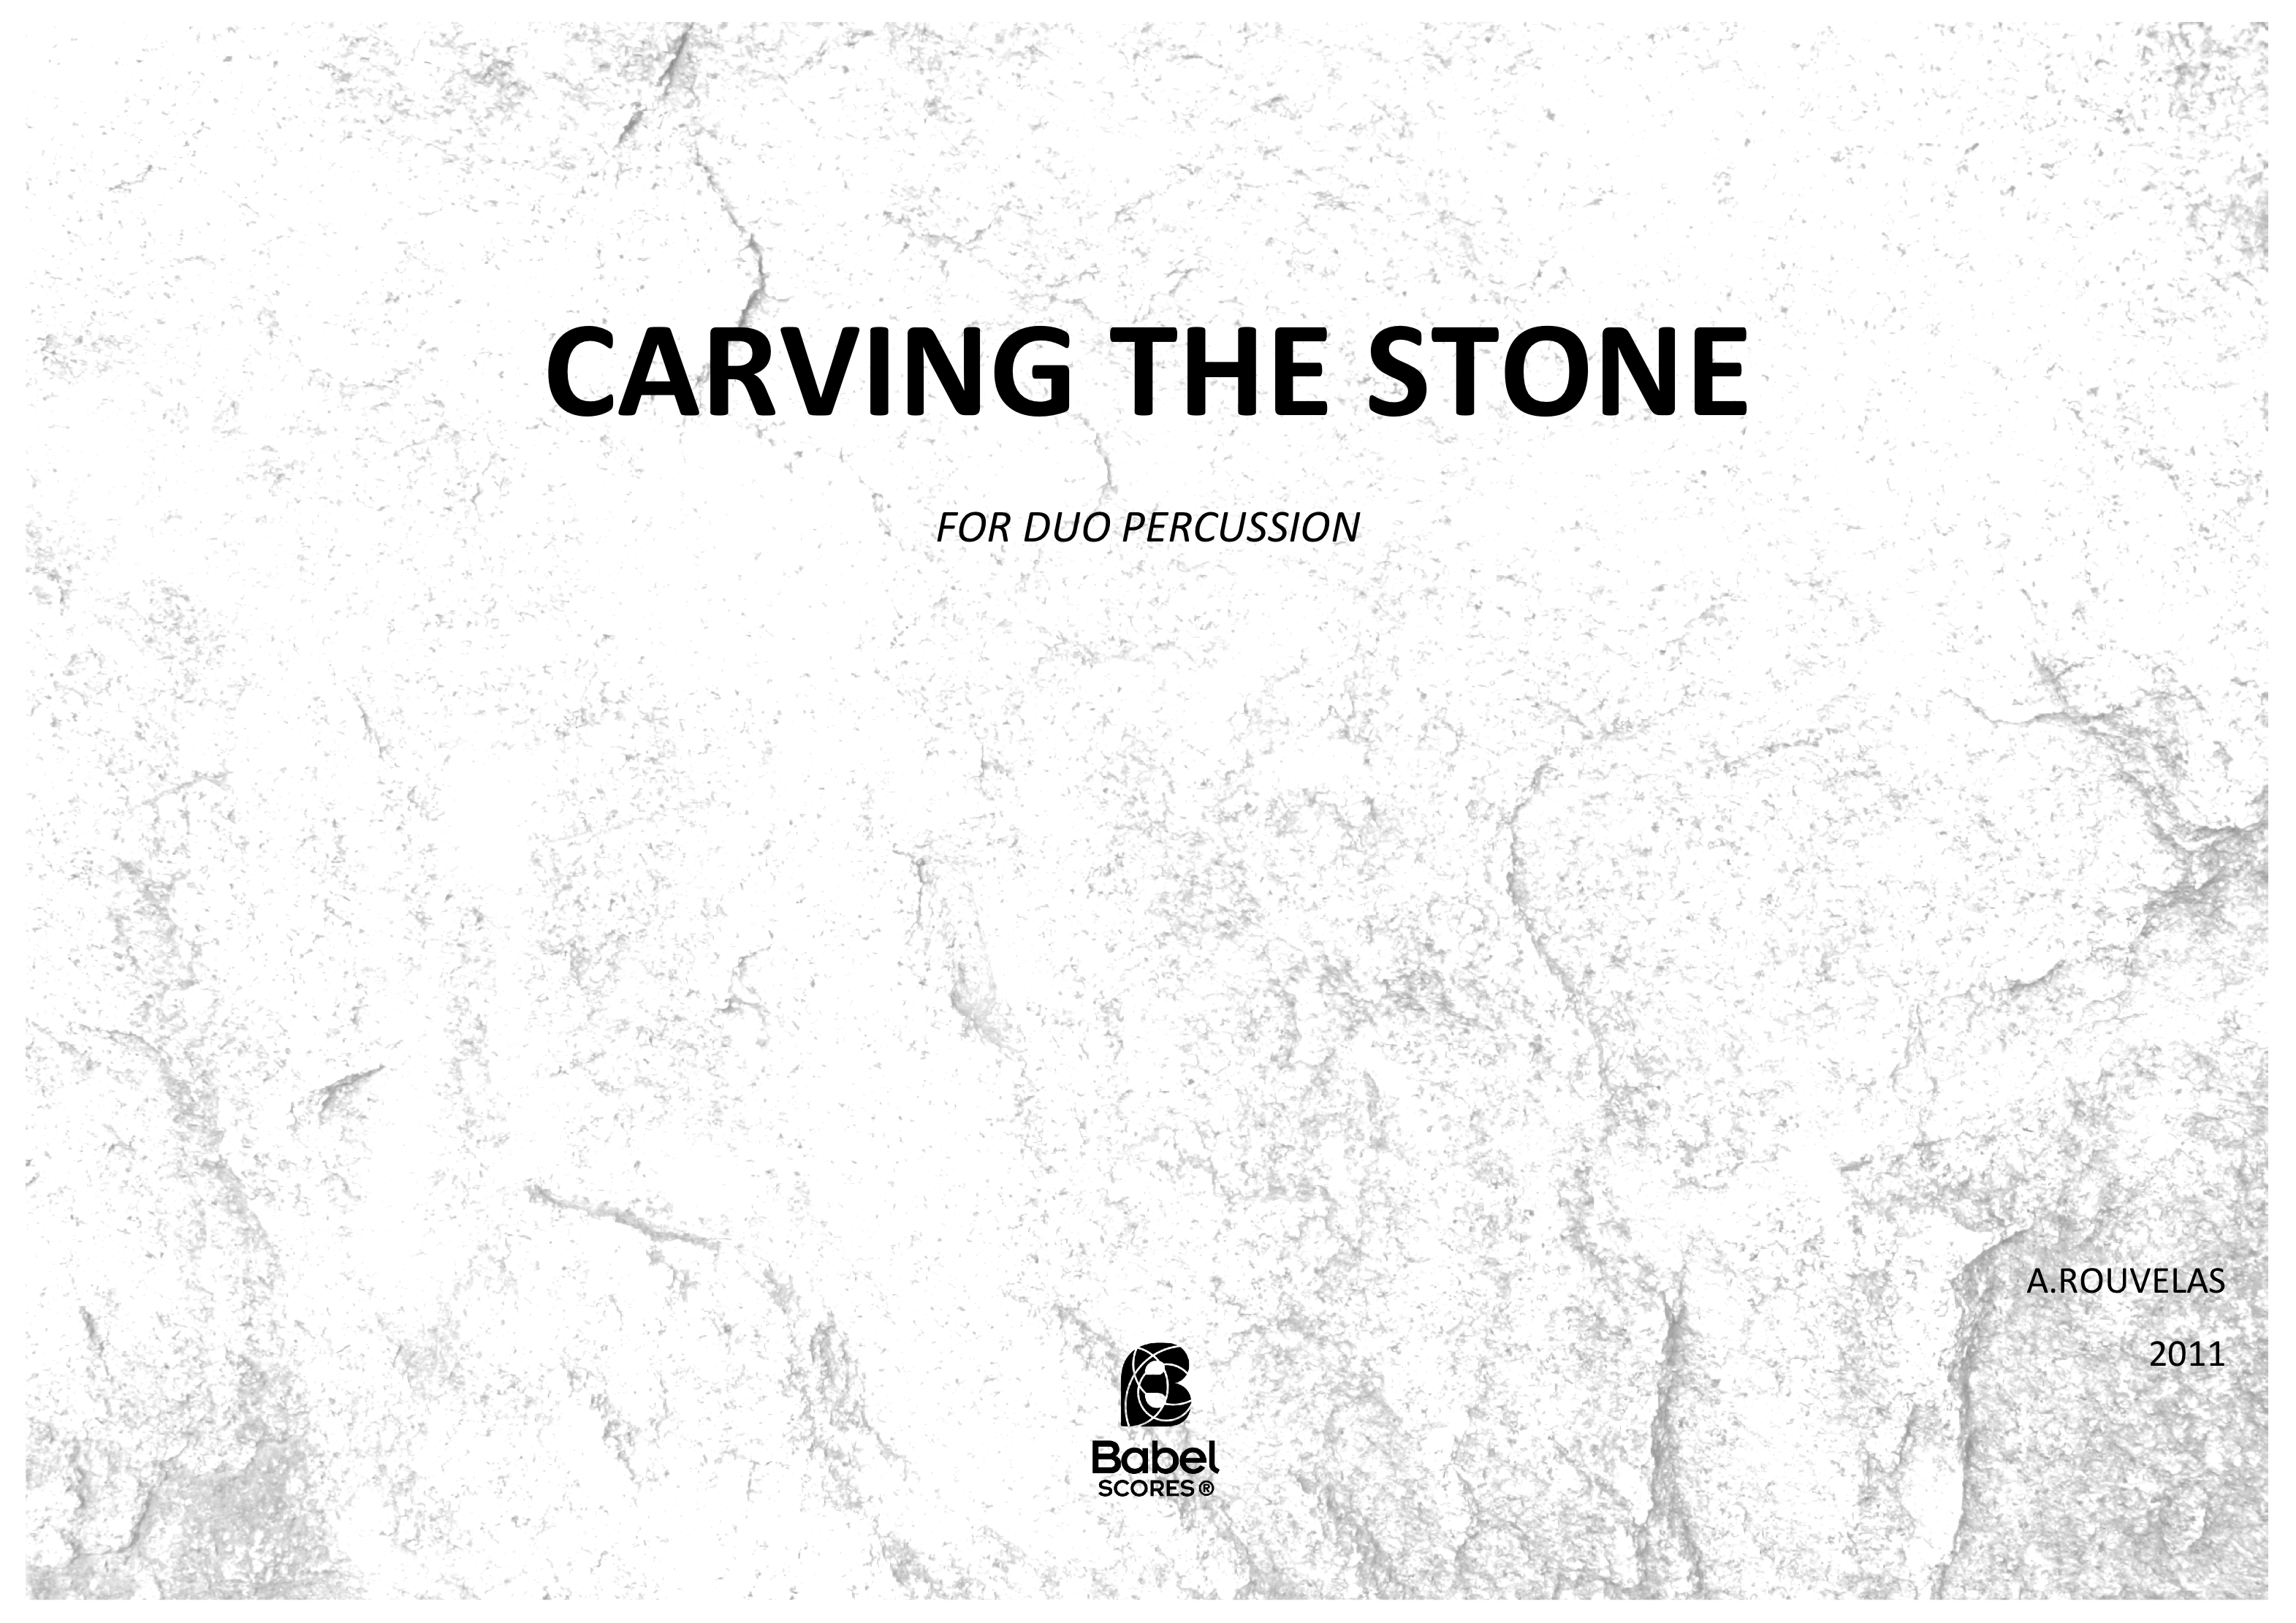 Carving the stone score z